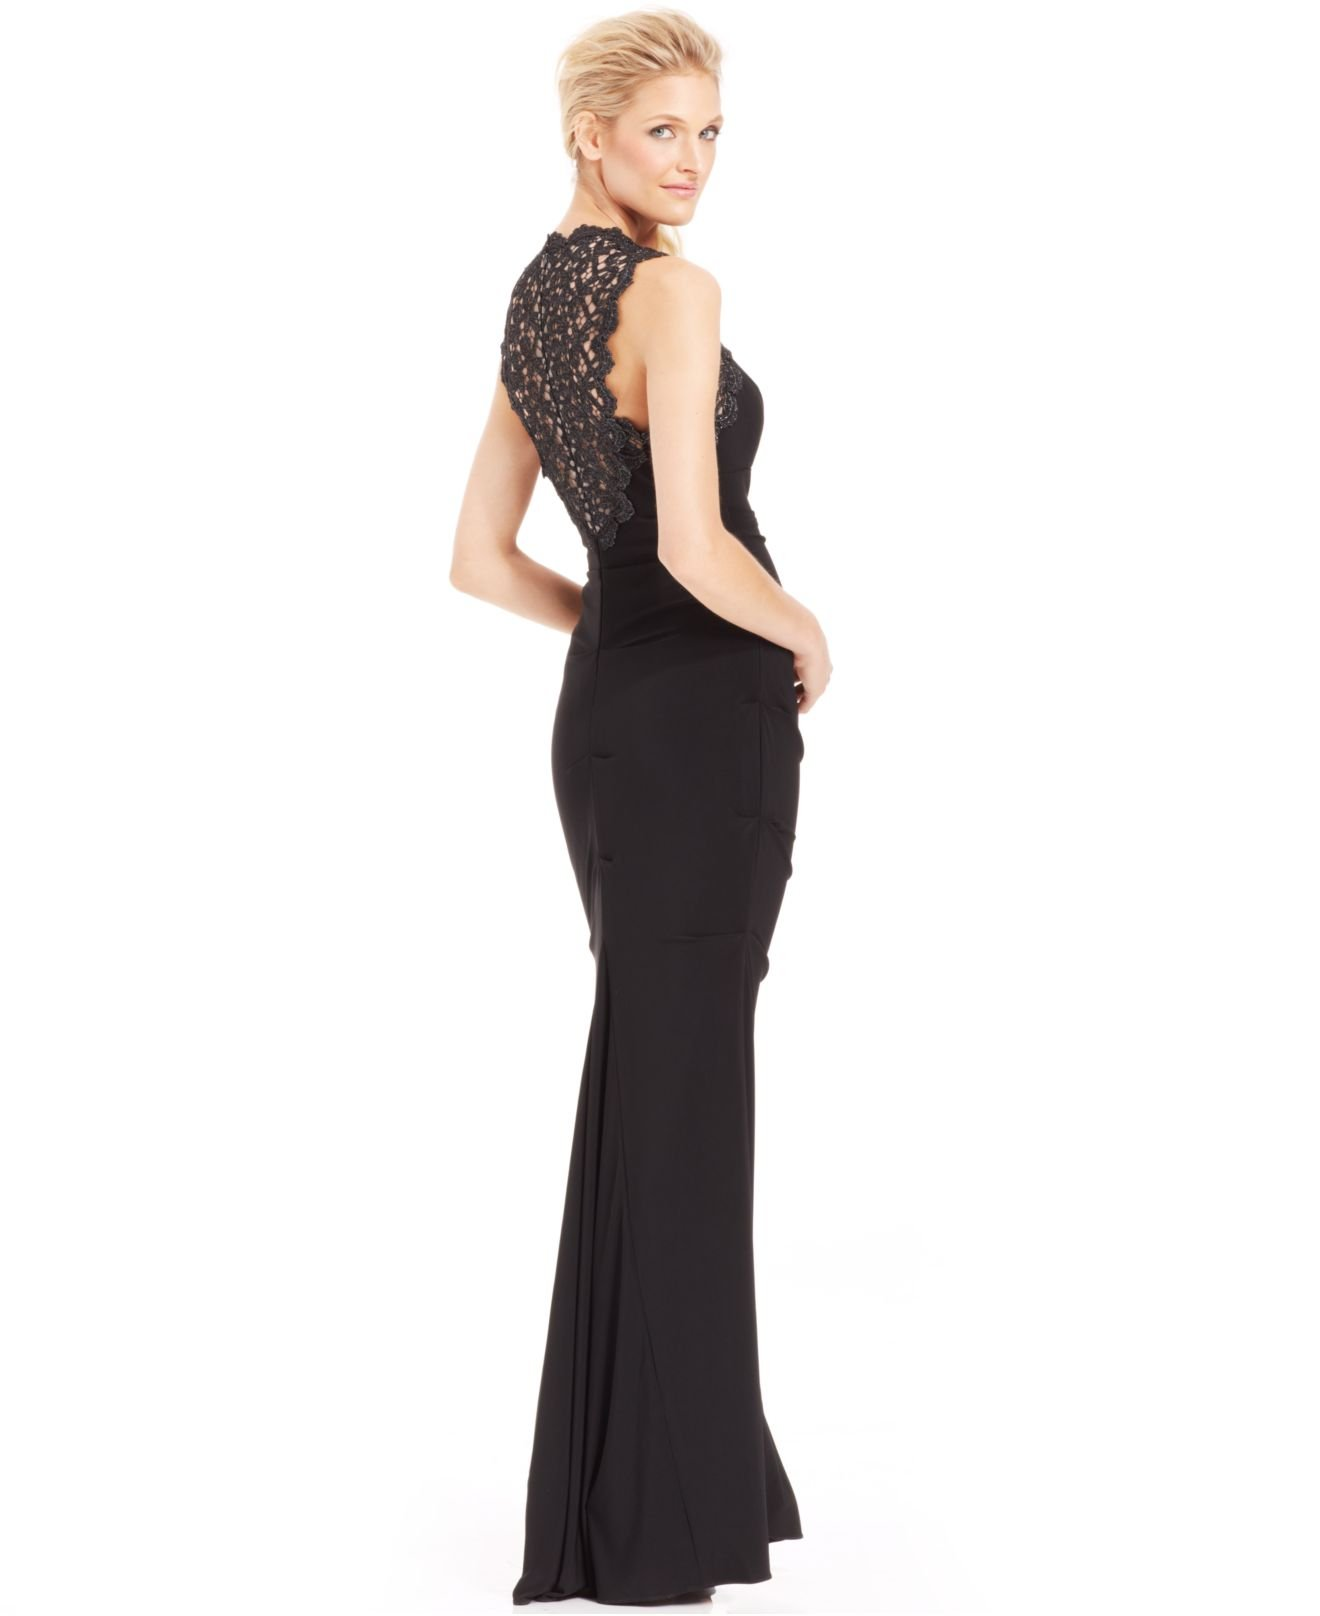 Lyst - Xscape Glitter Lace Cutout Mermaid Gown in Black